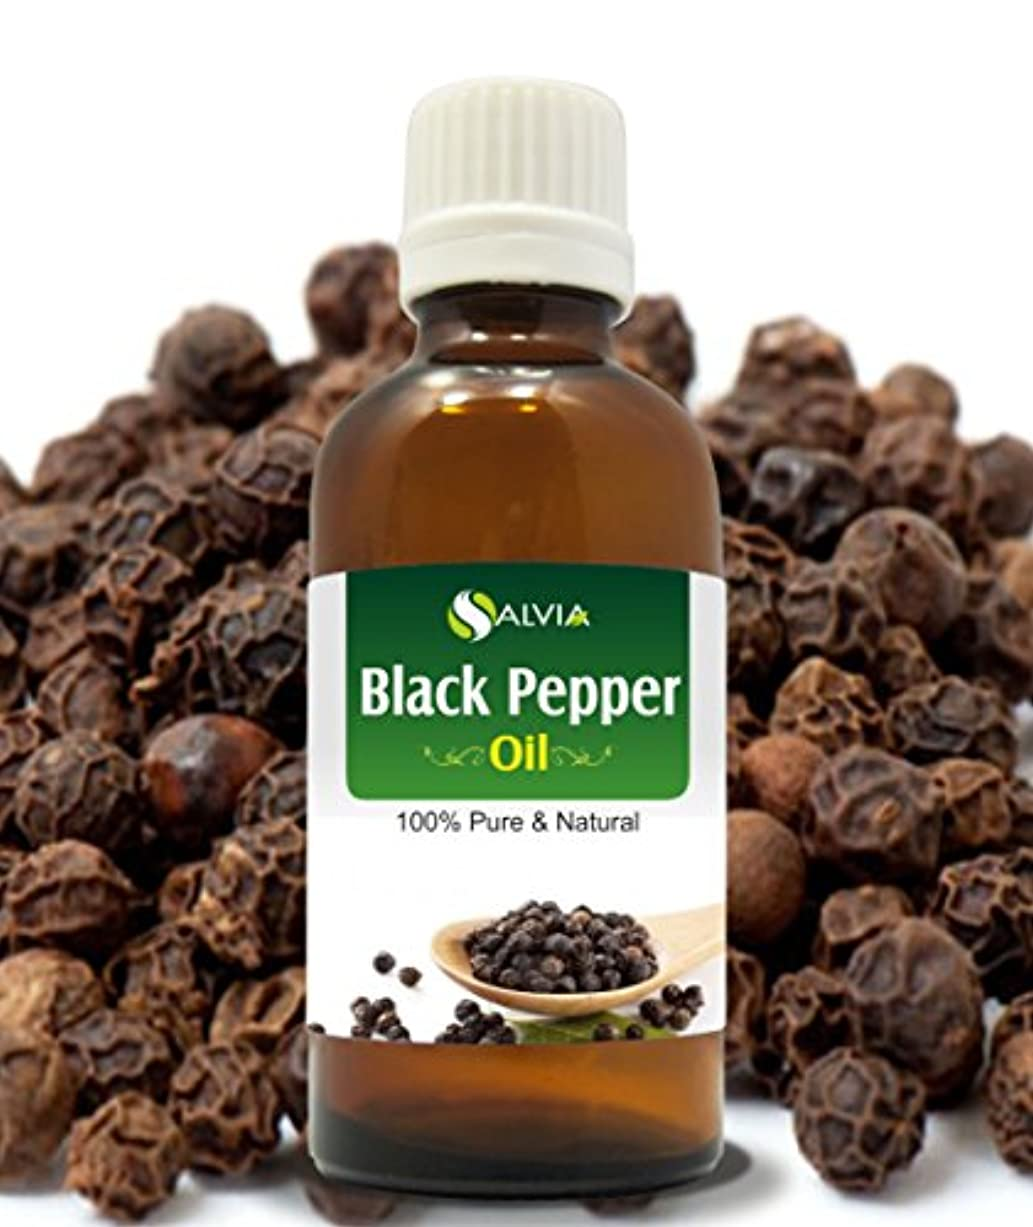 レンディション作動する紳士BLACK PEPPER OIL 100% NATURAL PURE UNDILUTED UNCUT ESSENTIAL OIL 50ML